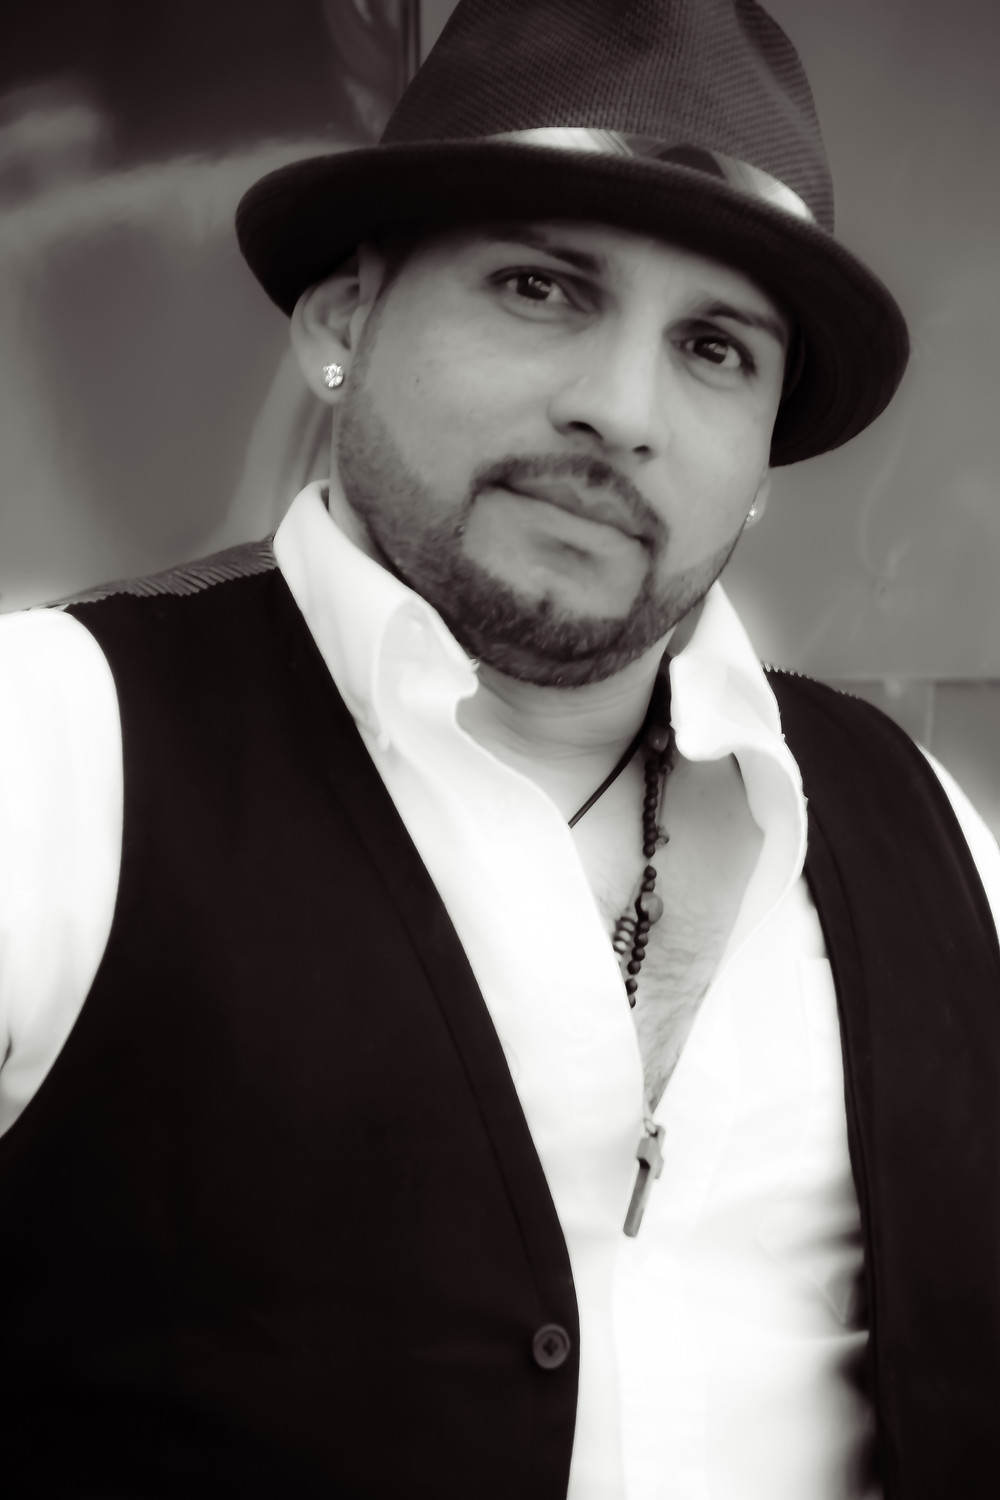 New Production from puertorrican singer Miguel Angel completed